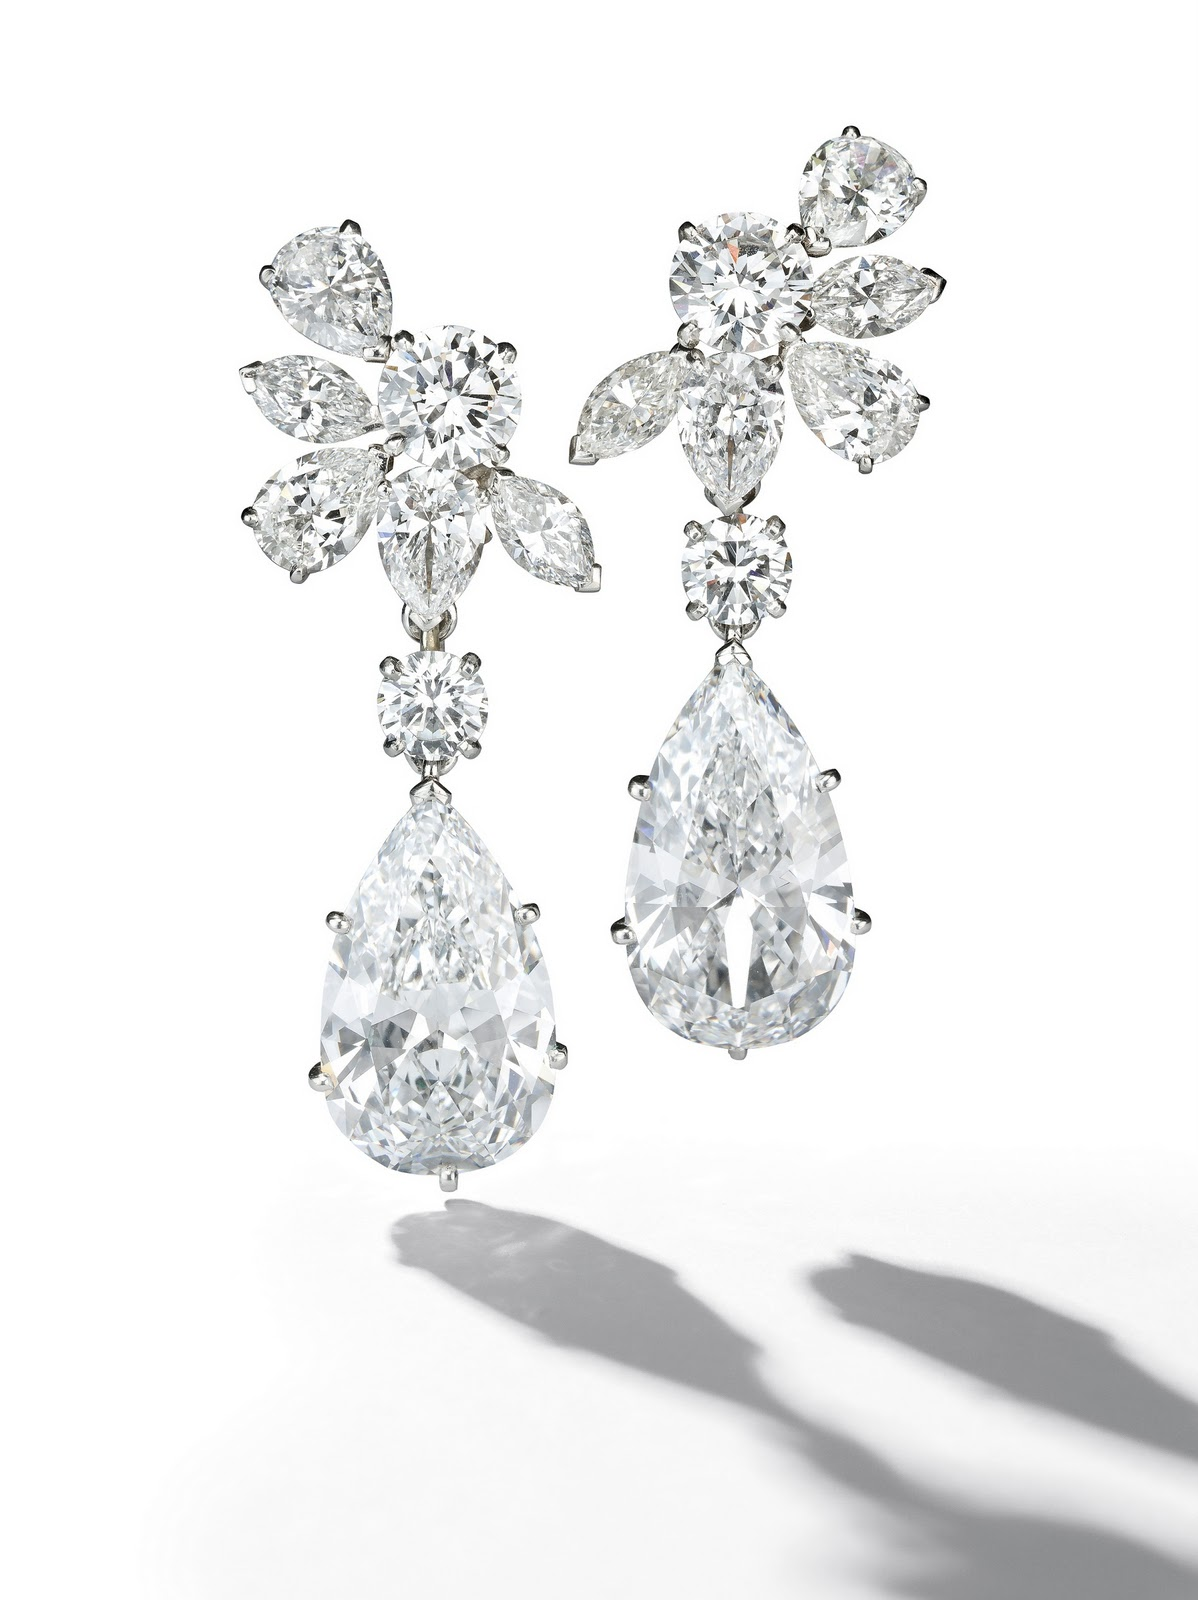 Pair Of Detachable 7 60 57cts Pear Shaped Diamond And Ear Pendants By Van Cleef Arpels Has An Auction Estimate 1 5 Million 2